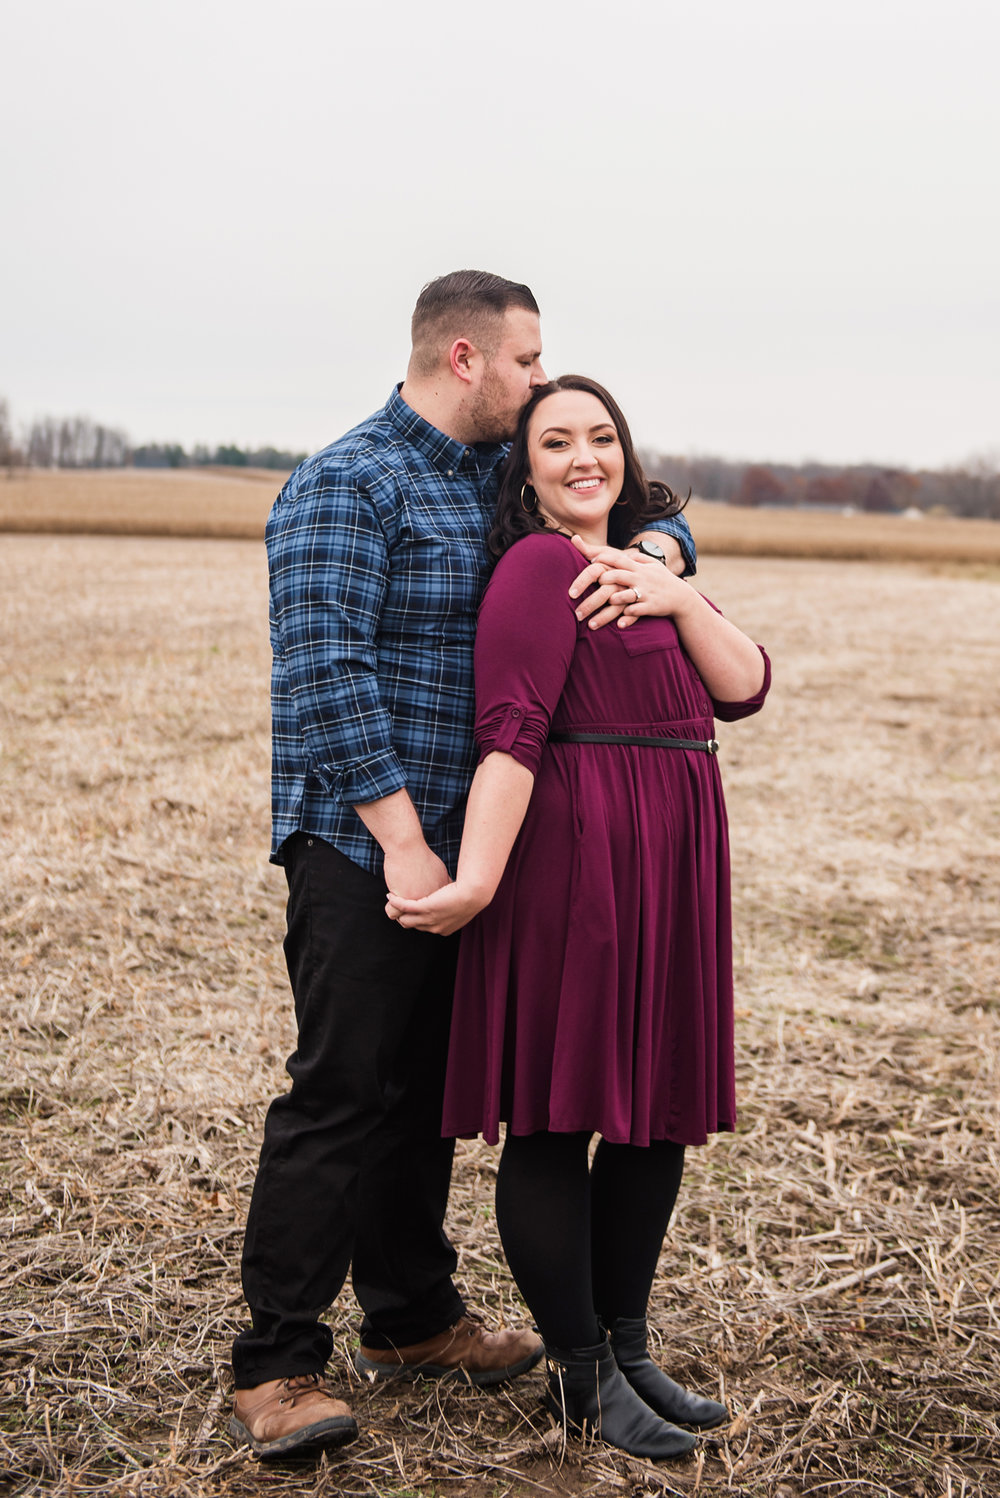 Tinker_Nature_Park_Rochester_Engagement_Session_JILL_STUDIO_Rochester_NY_Photographer_DSC_0535.jpg